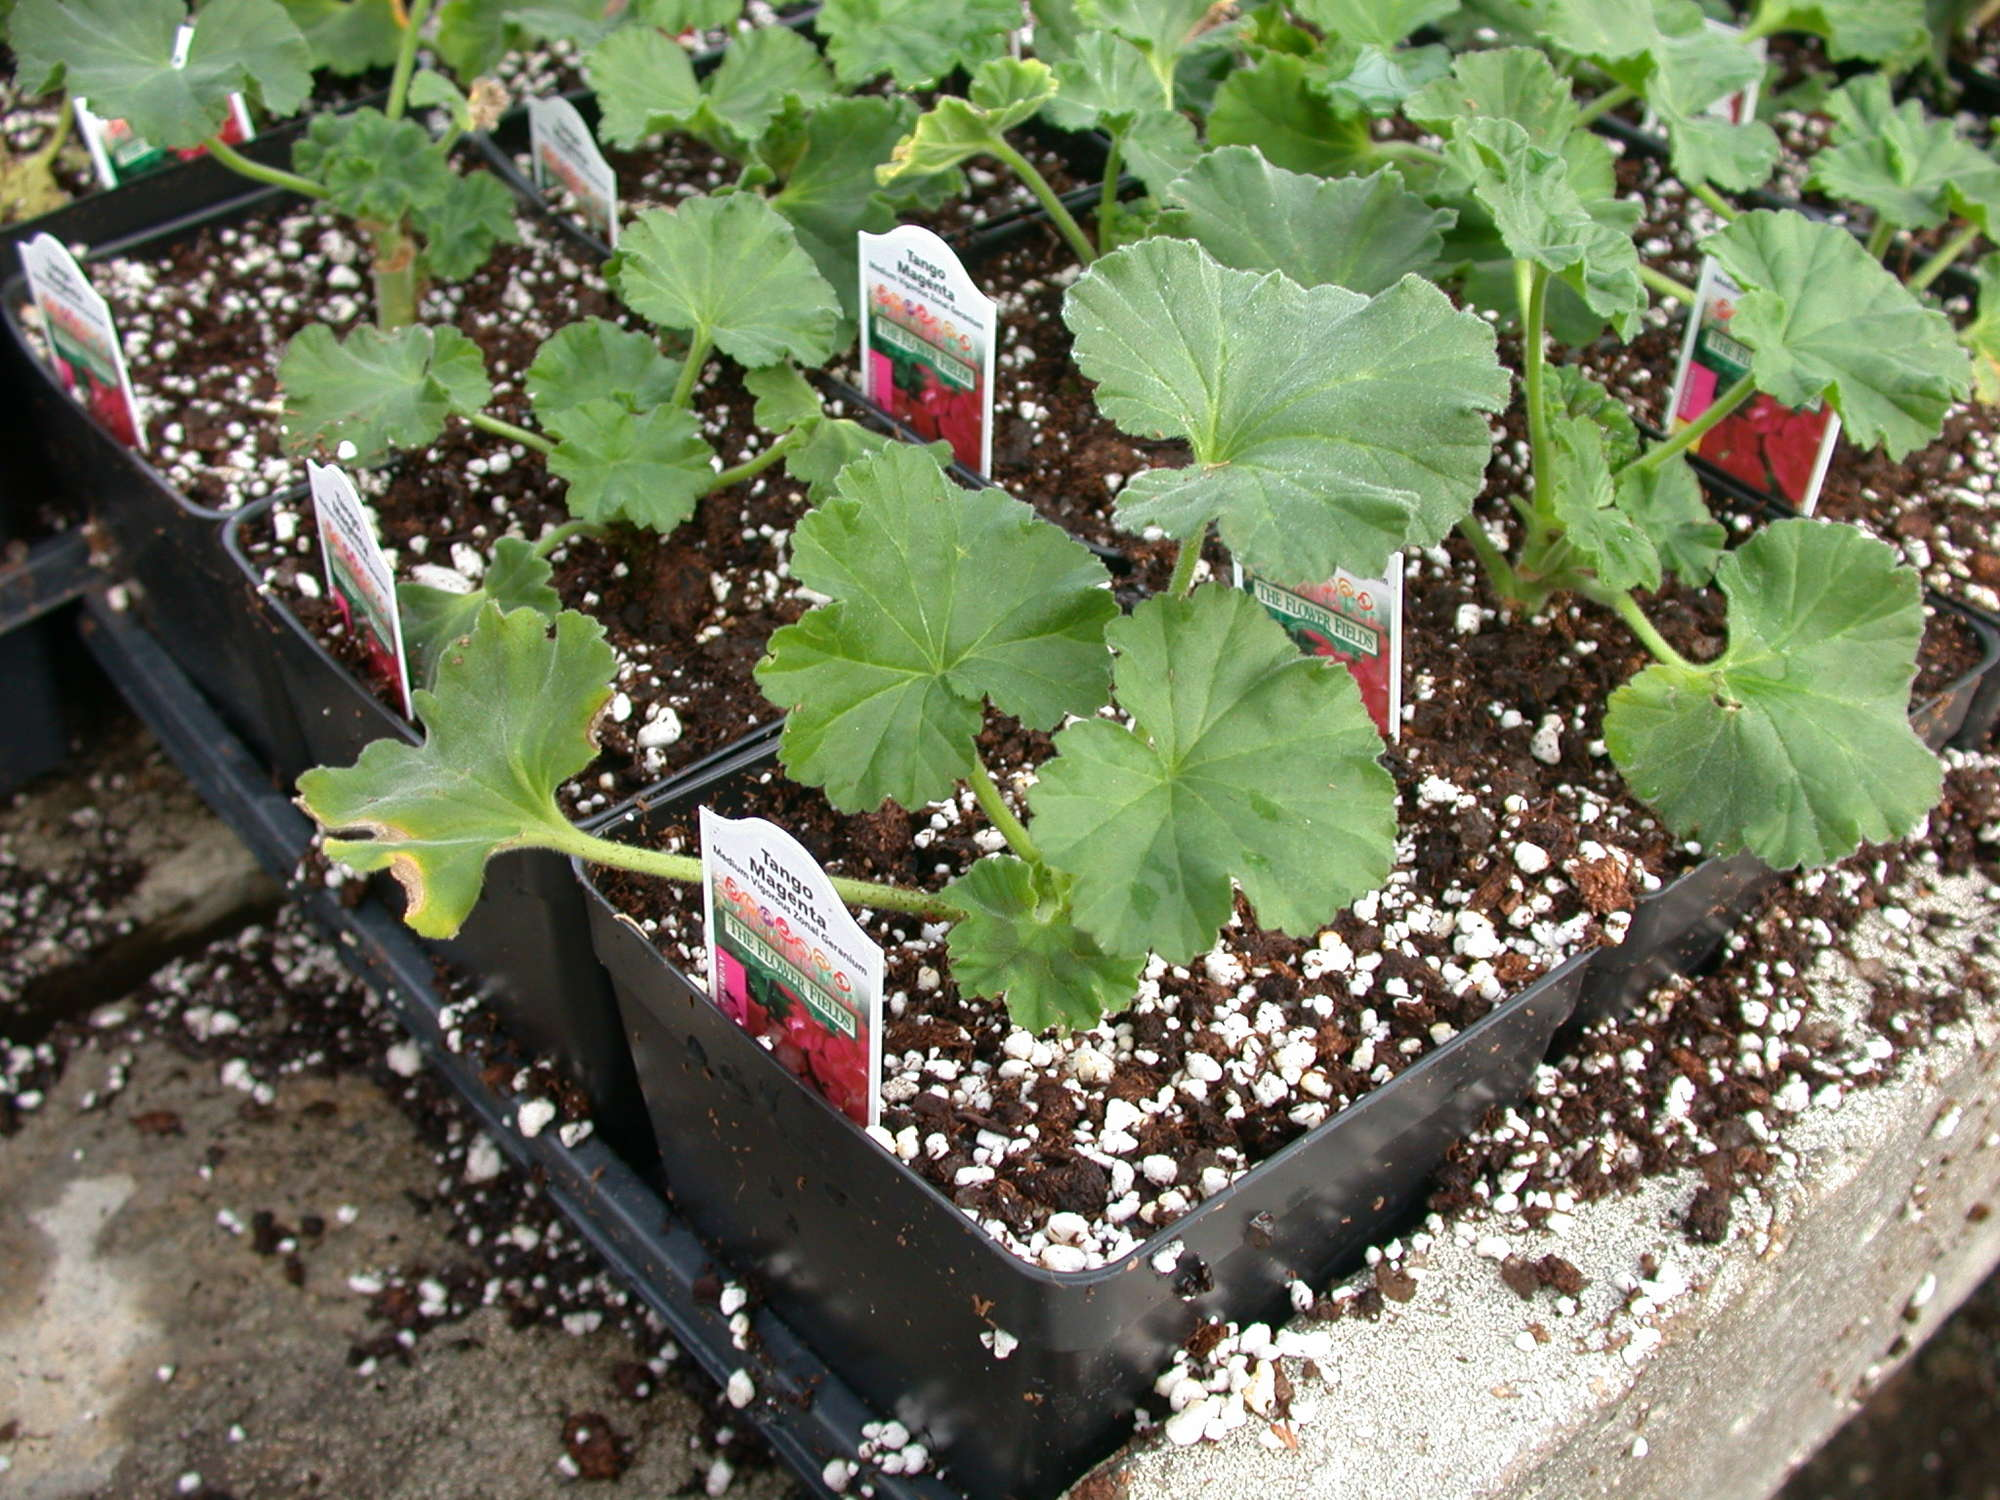 A geranium in a 4-inch square pot takes up just over one-tenth of a square foot. Multiplied by four weeks of growing time, it takes up approximately four-tenths square foot weeks in the greenhouse. PGRs can reduce the space needed, which leads to a lower fixed cost per plant.